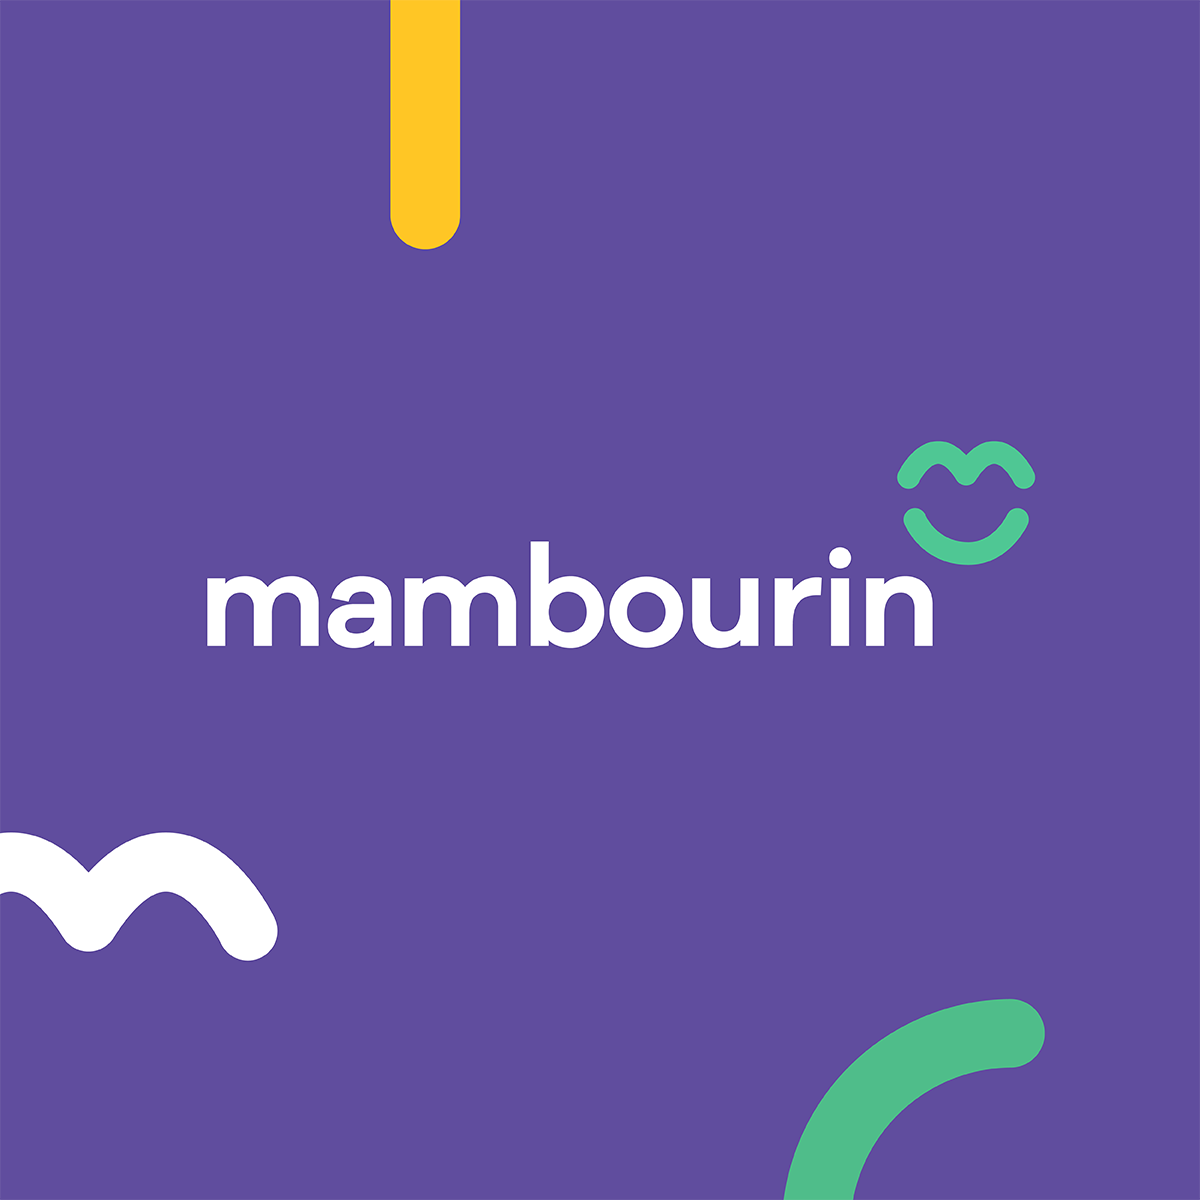 Mambourin - New Brand Mark for 2018 Rebrand